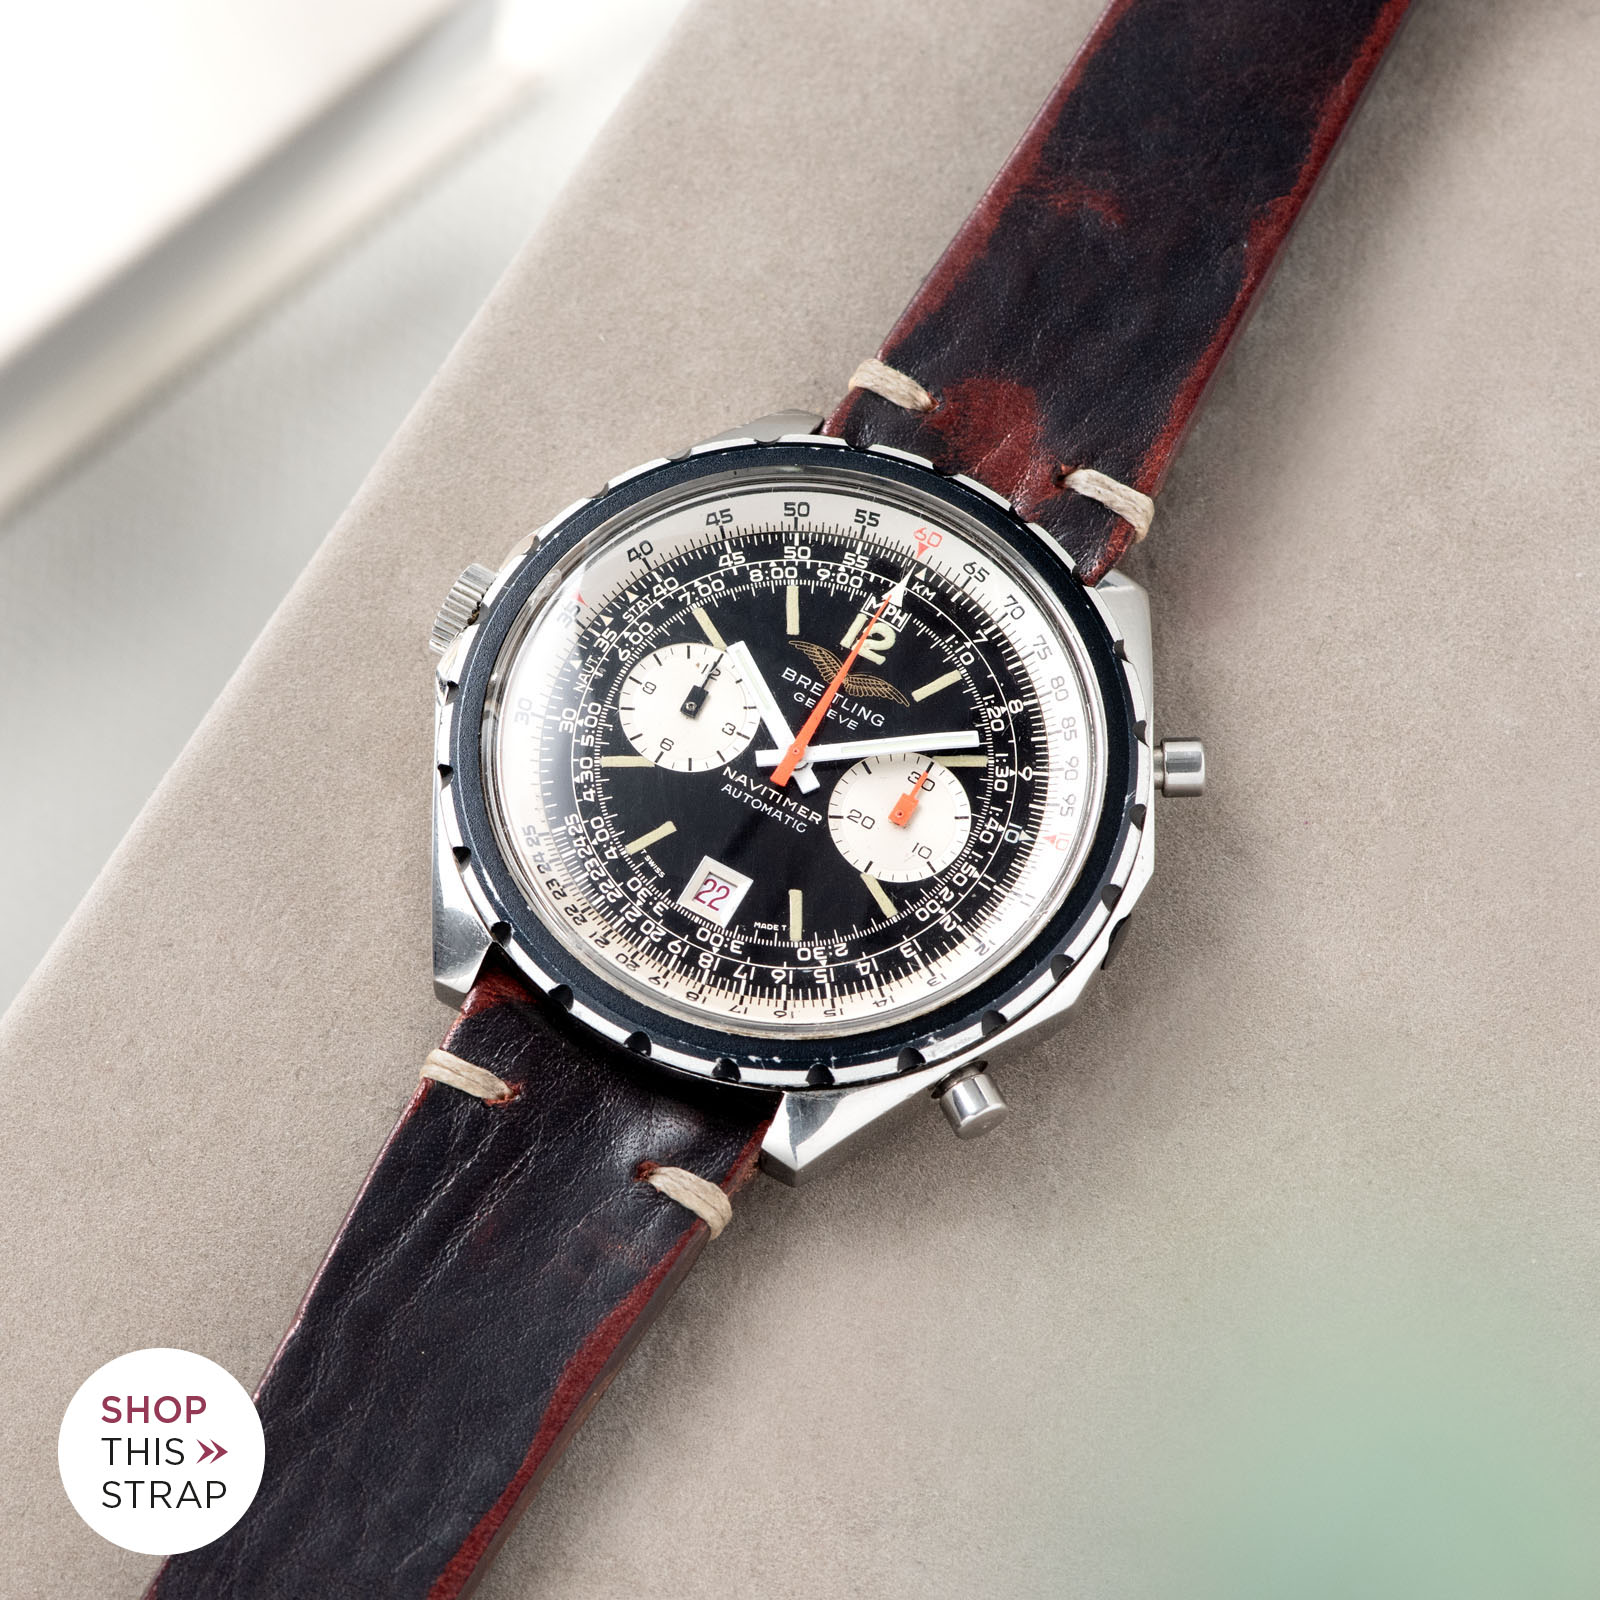 Bulang and Sons_Strapguide_Breitling Navitimer ref issued to iraqi air force ref 1806_Diablo Black Leather Watch Strap _005